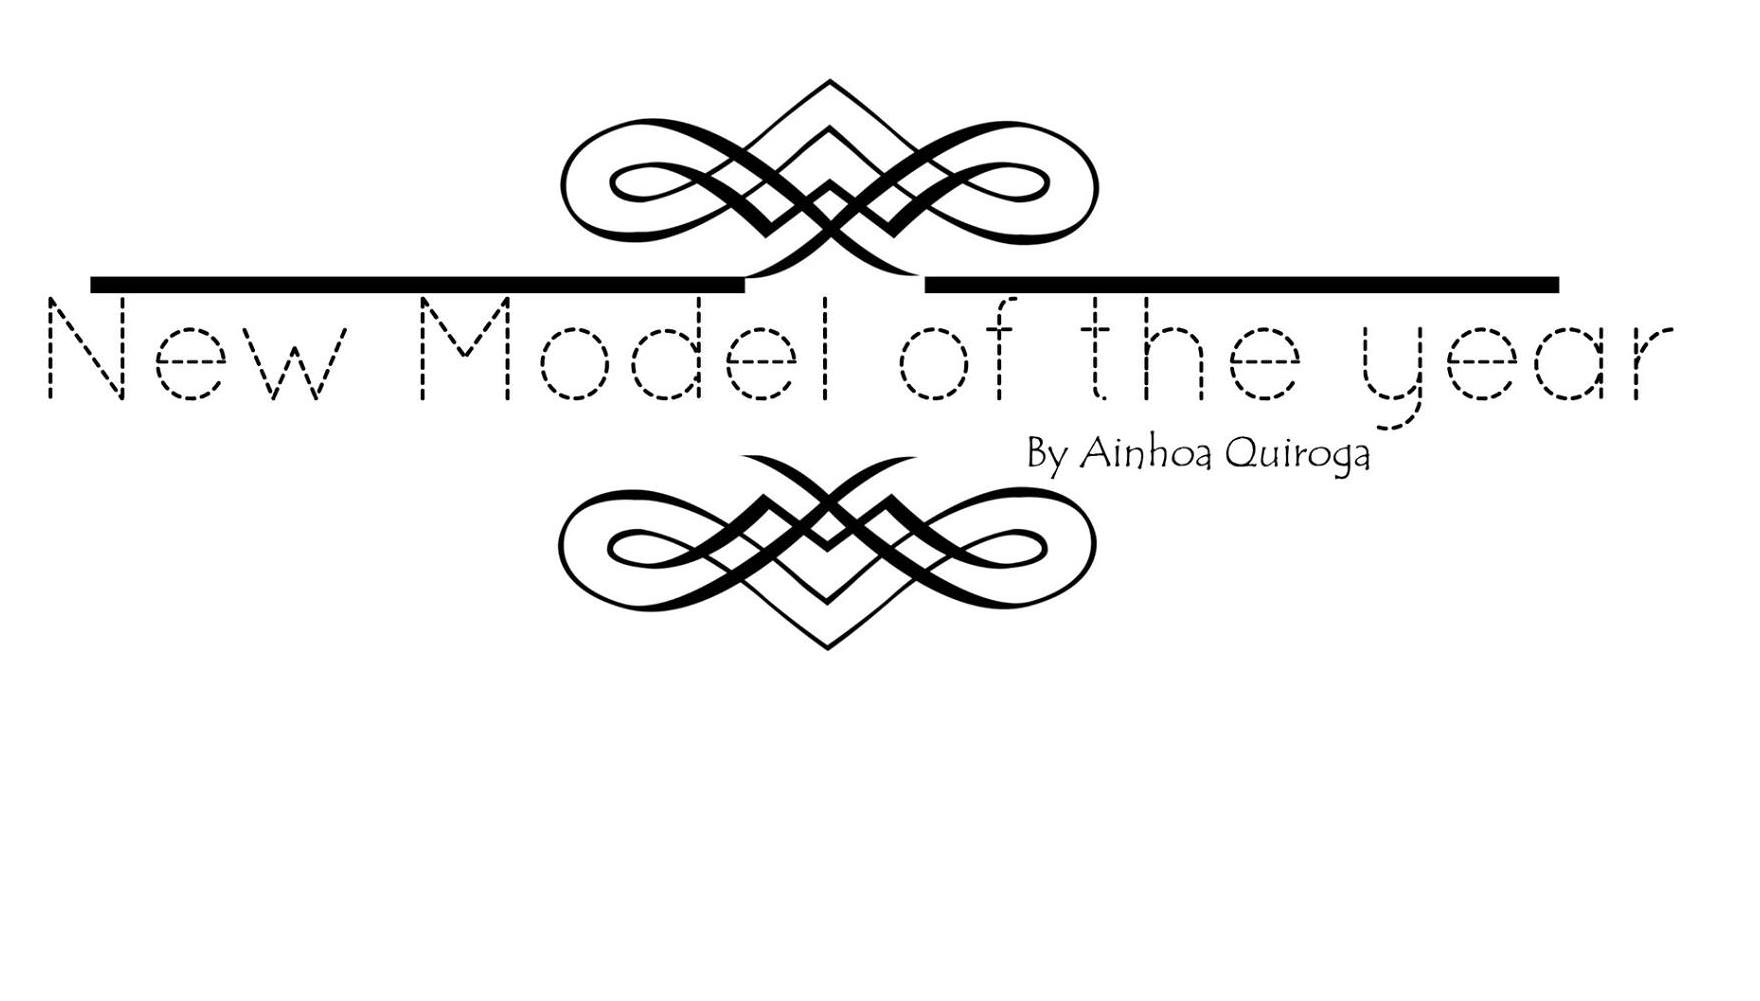 New Models of the Year by Ainhoa Quiroga